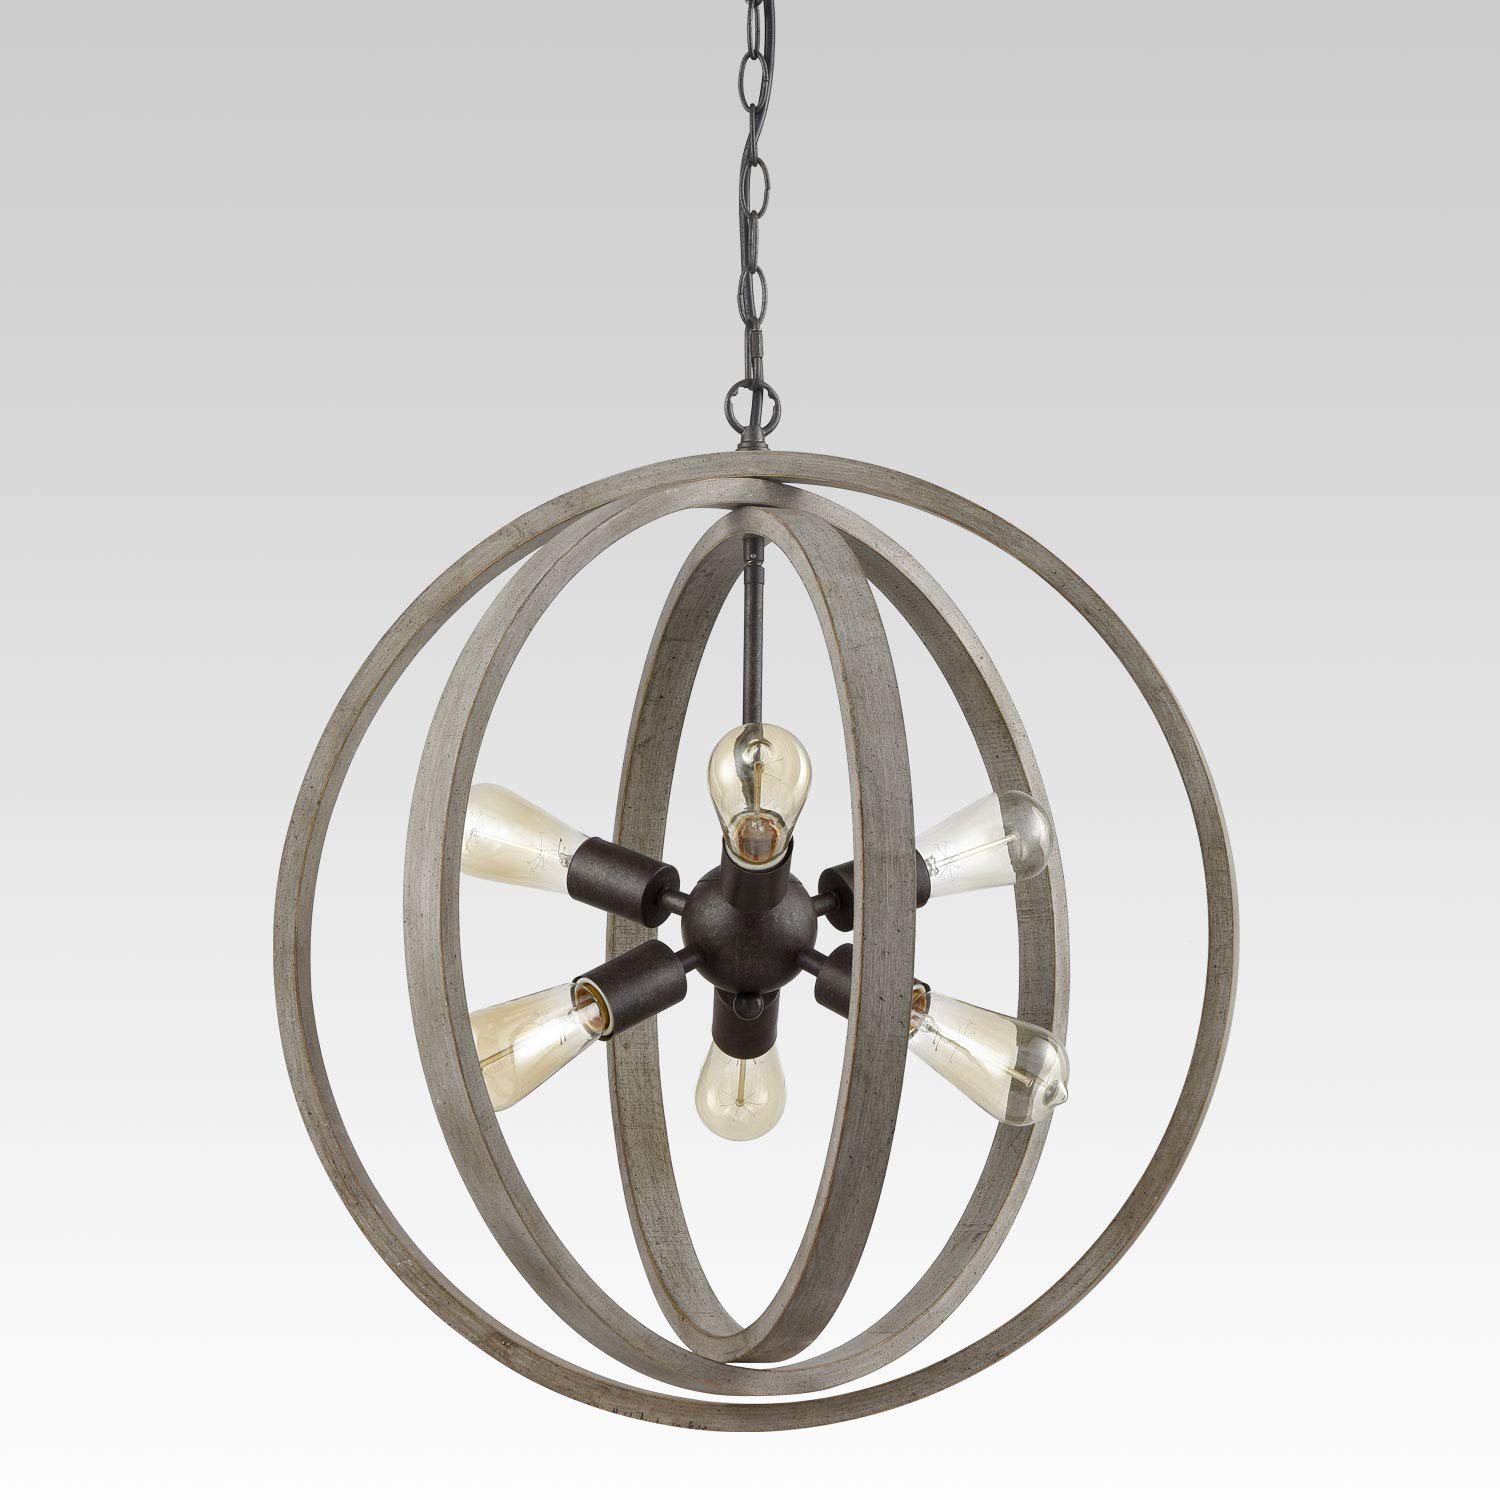 Modern Rustic Six Light Wood Orb Pendant with Antique Grey Wash Finish and Bronze Base HOMSTYLE TM5145-6DU-TX